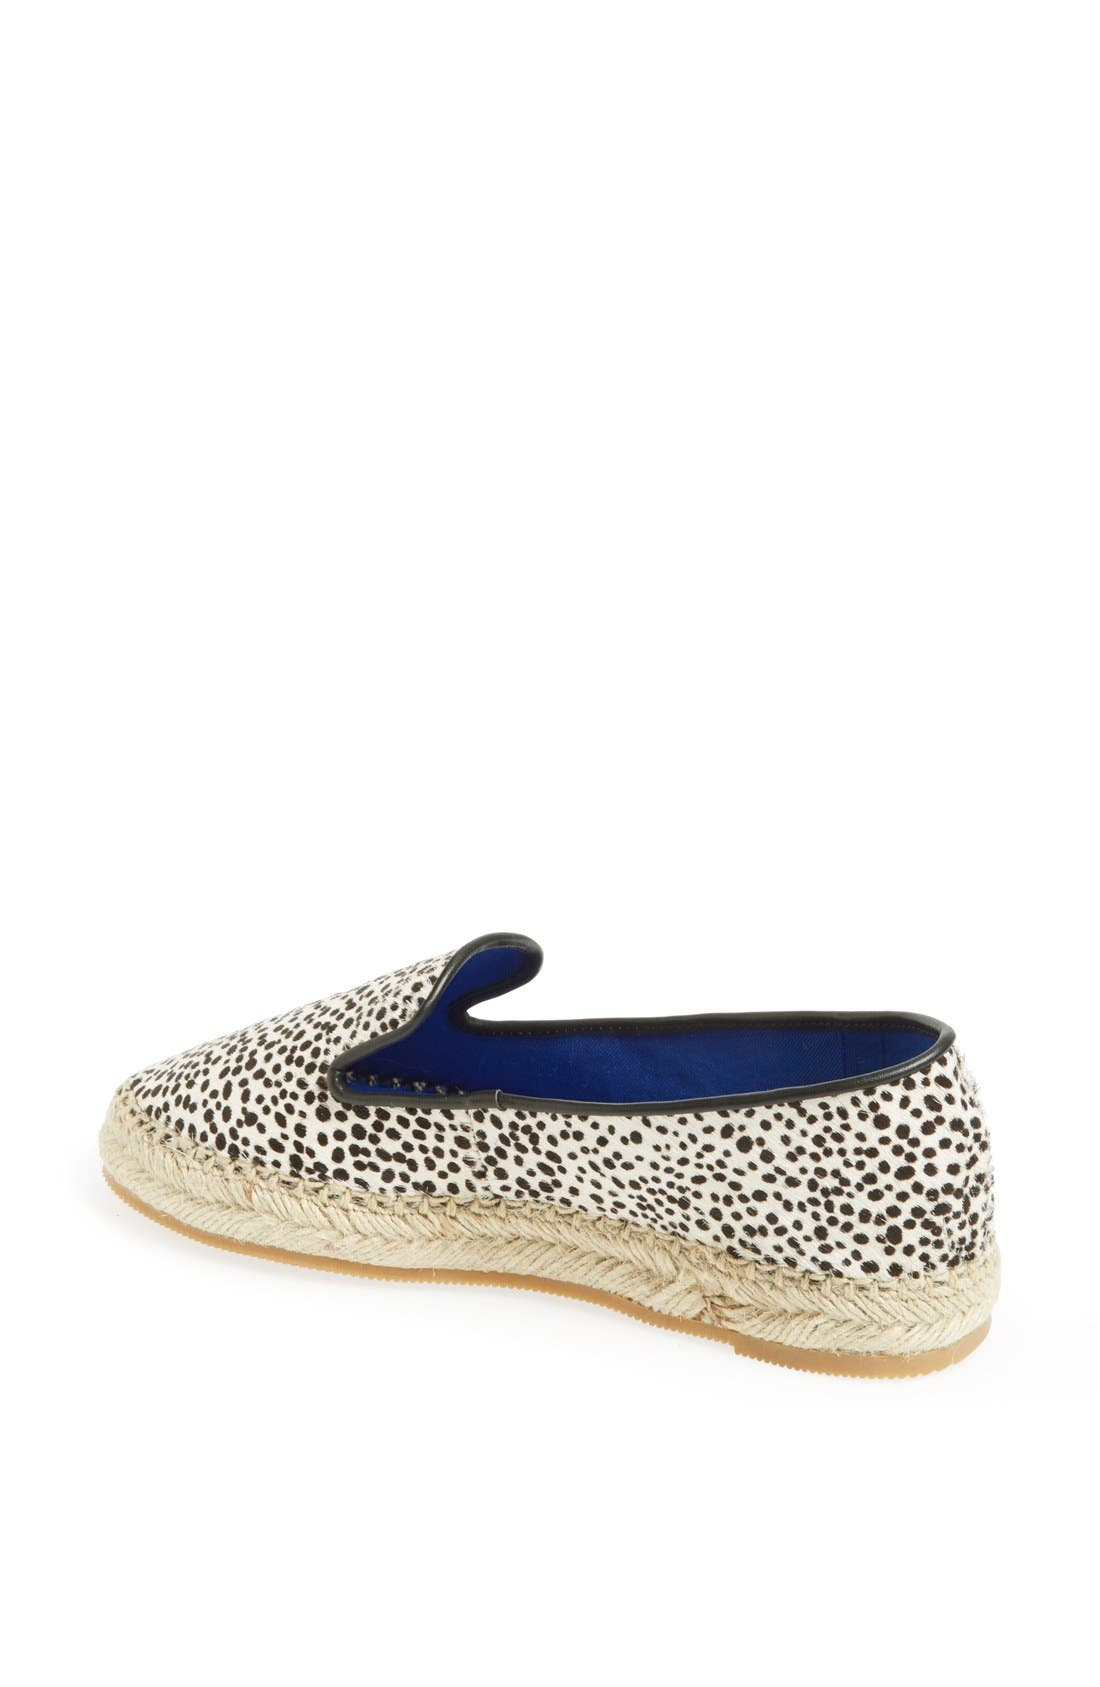 Alternate Image 2  - Jeffrey Campbell 'Abides' Printed Calf Hair Espadrille Flat